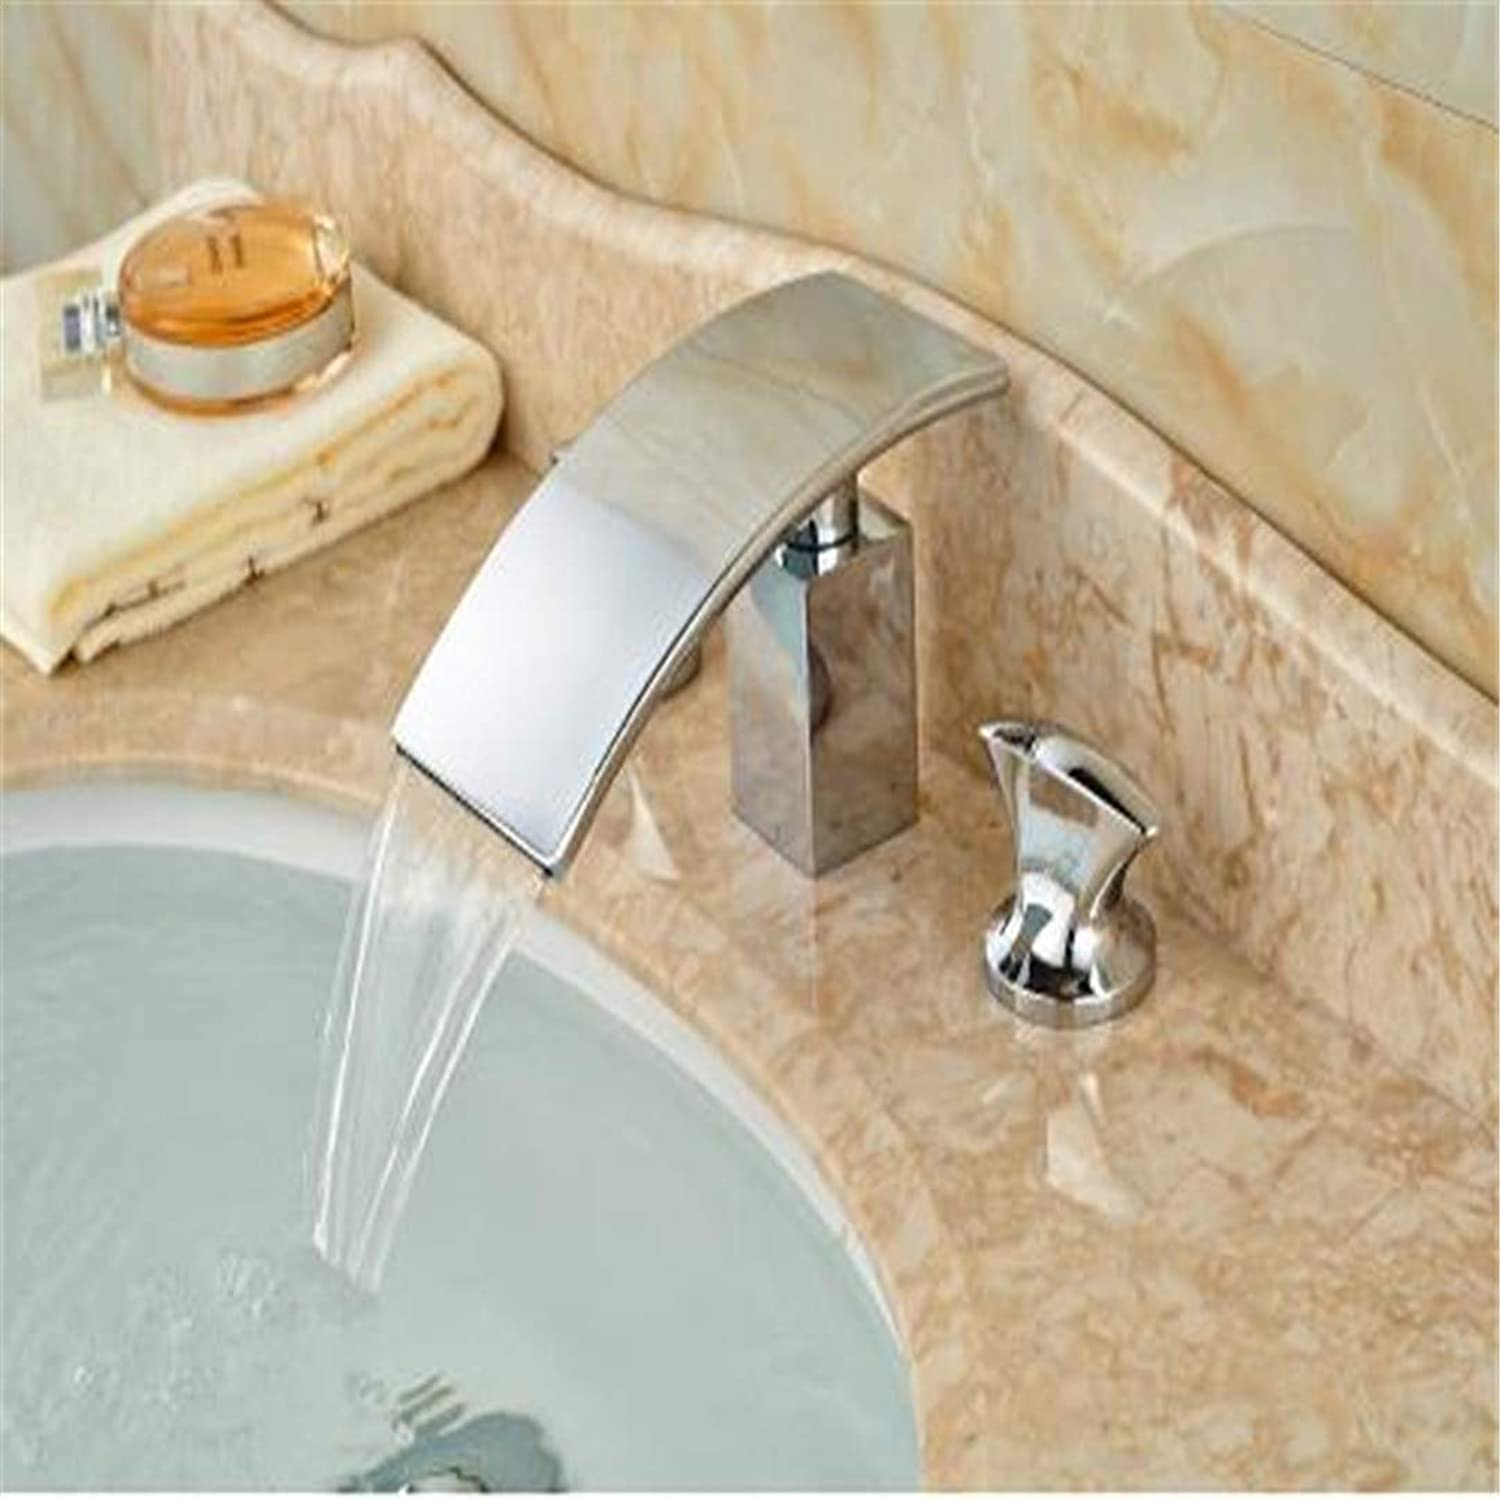 Taps Kitchen Faucet Bathroom Taps Faucet Waterfall Tapluxury Waterfall Chrome Brass Bathroom Basin Faucet Deck Mounted